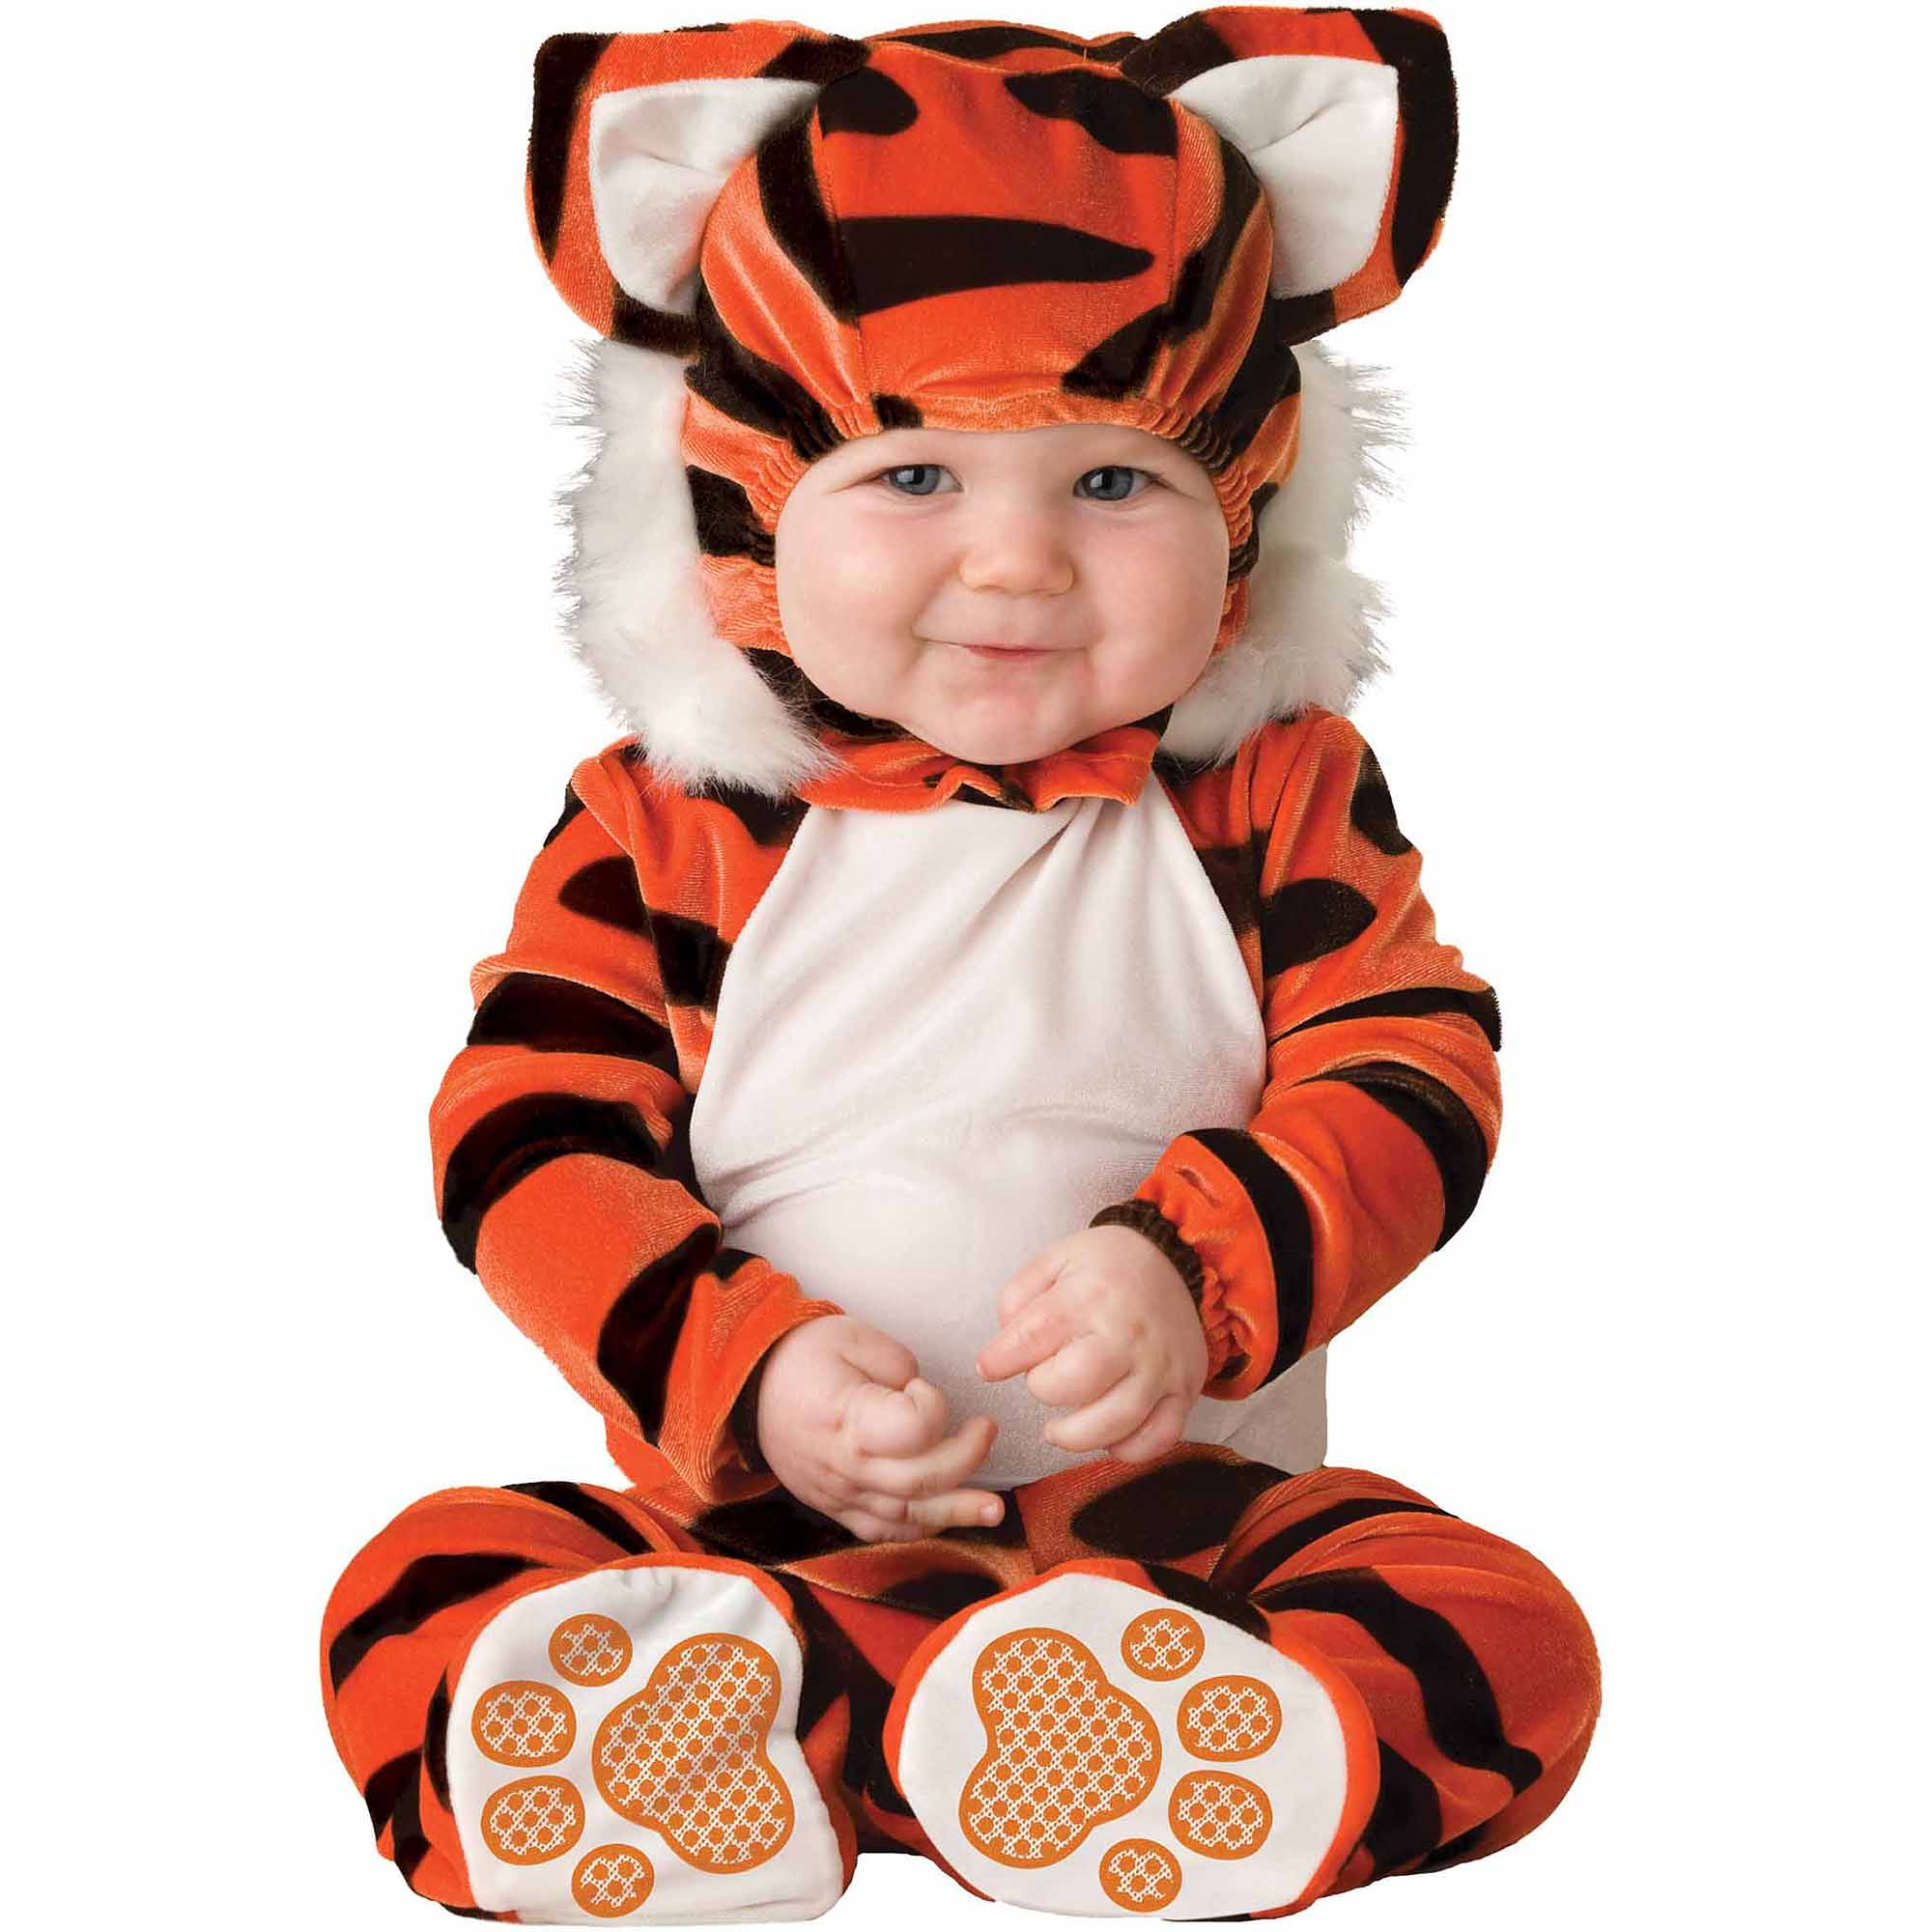 Tiger Tot Infant Halloween Costume  sc 1 st  Walmart & Infant Halloween Costumes 3-6 Months